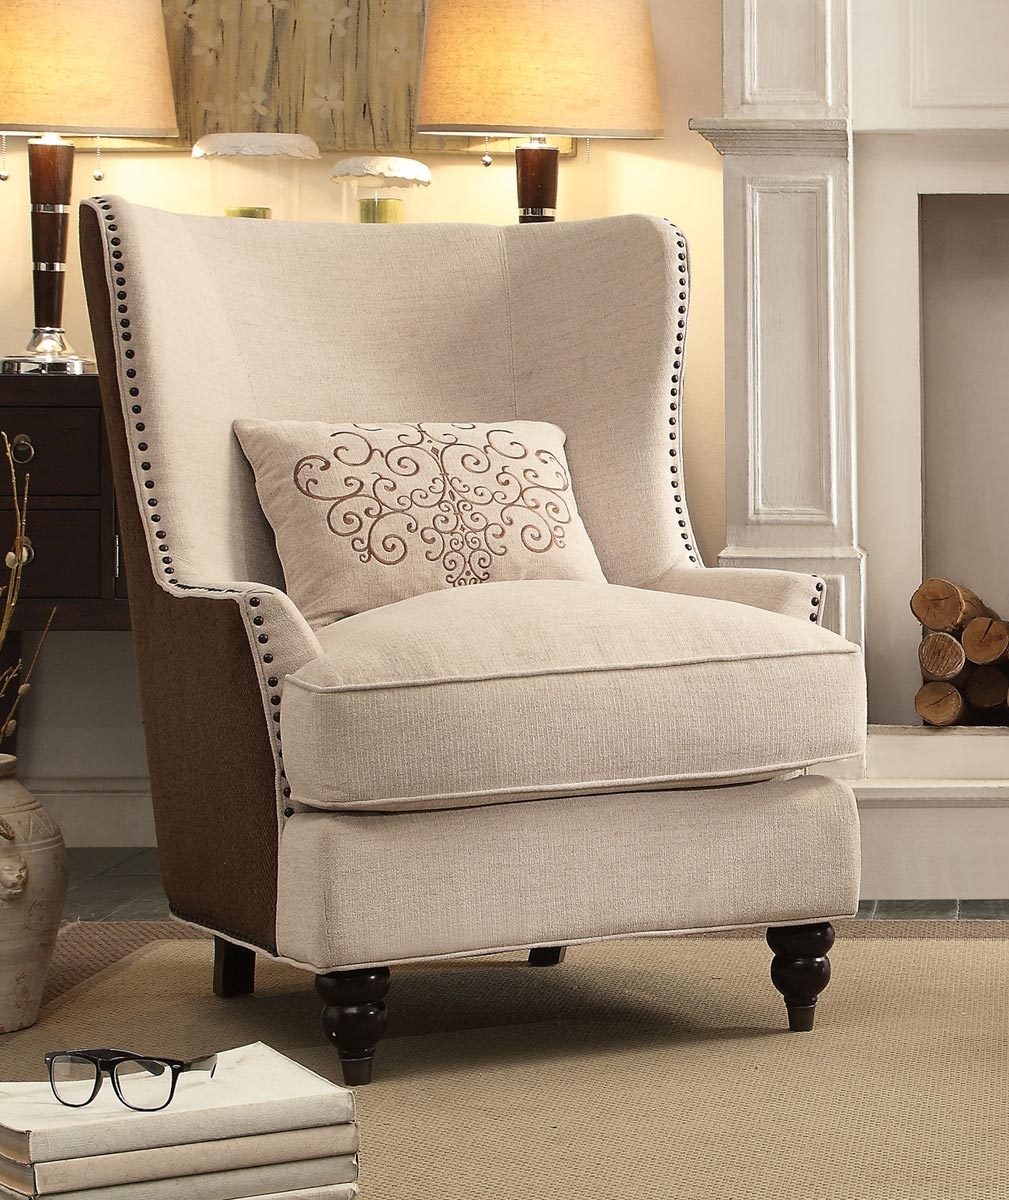 Homelegance Georgia Accent Chair with 1 Kidney Pillow - Neutral